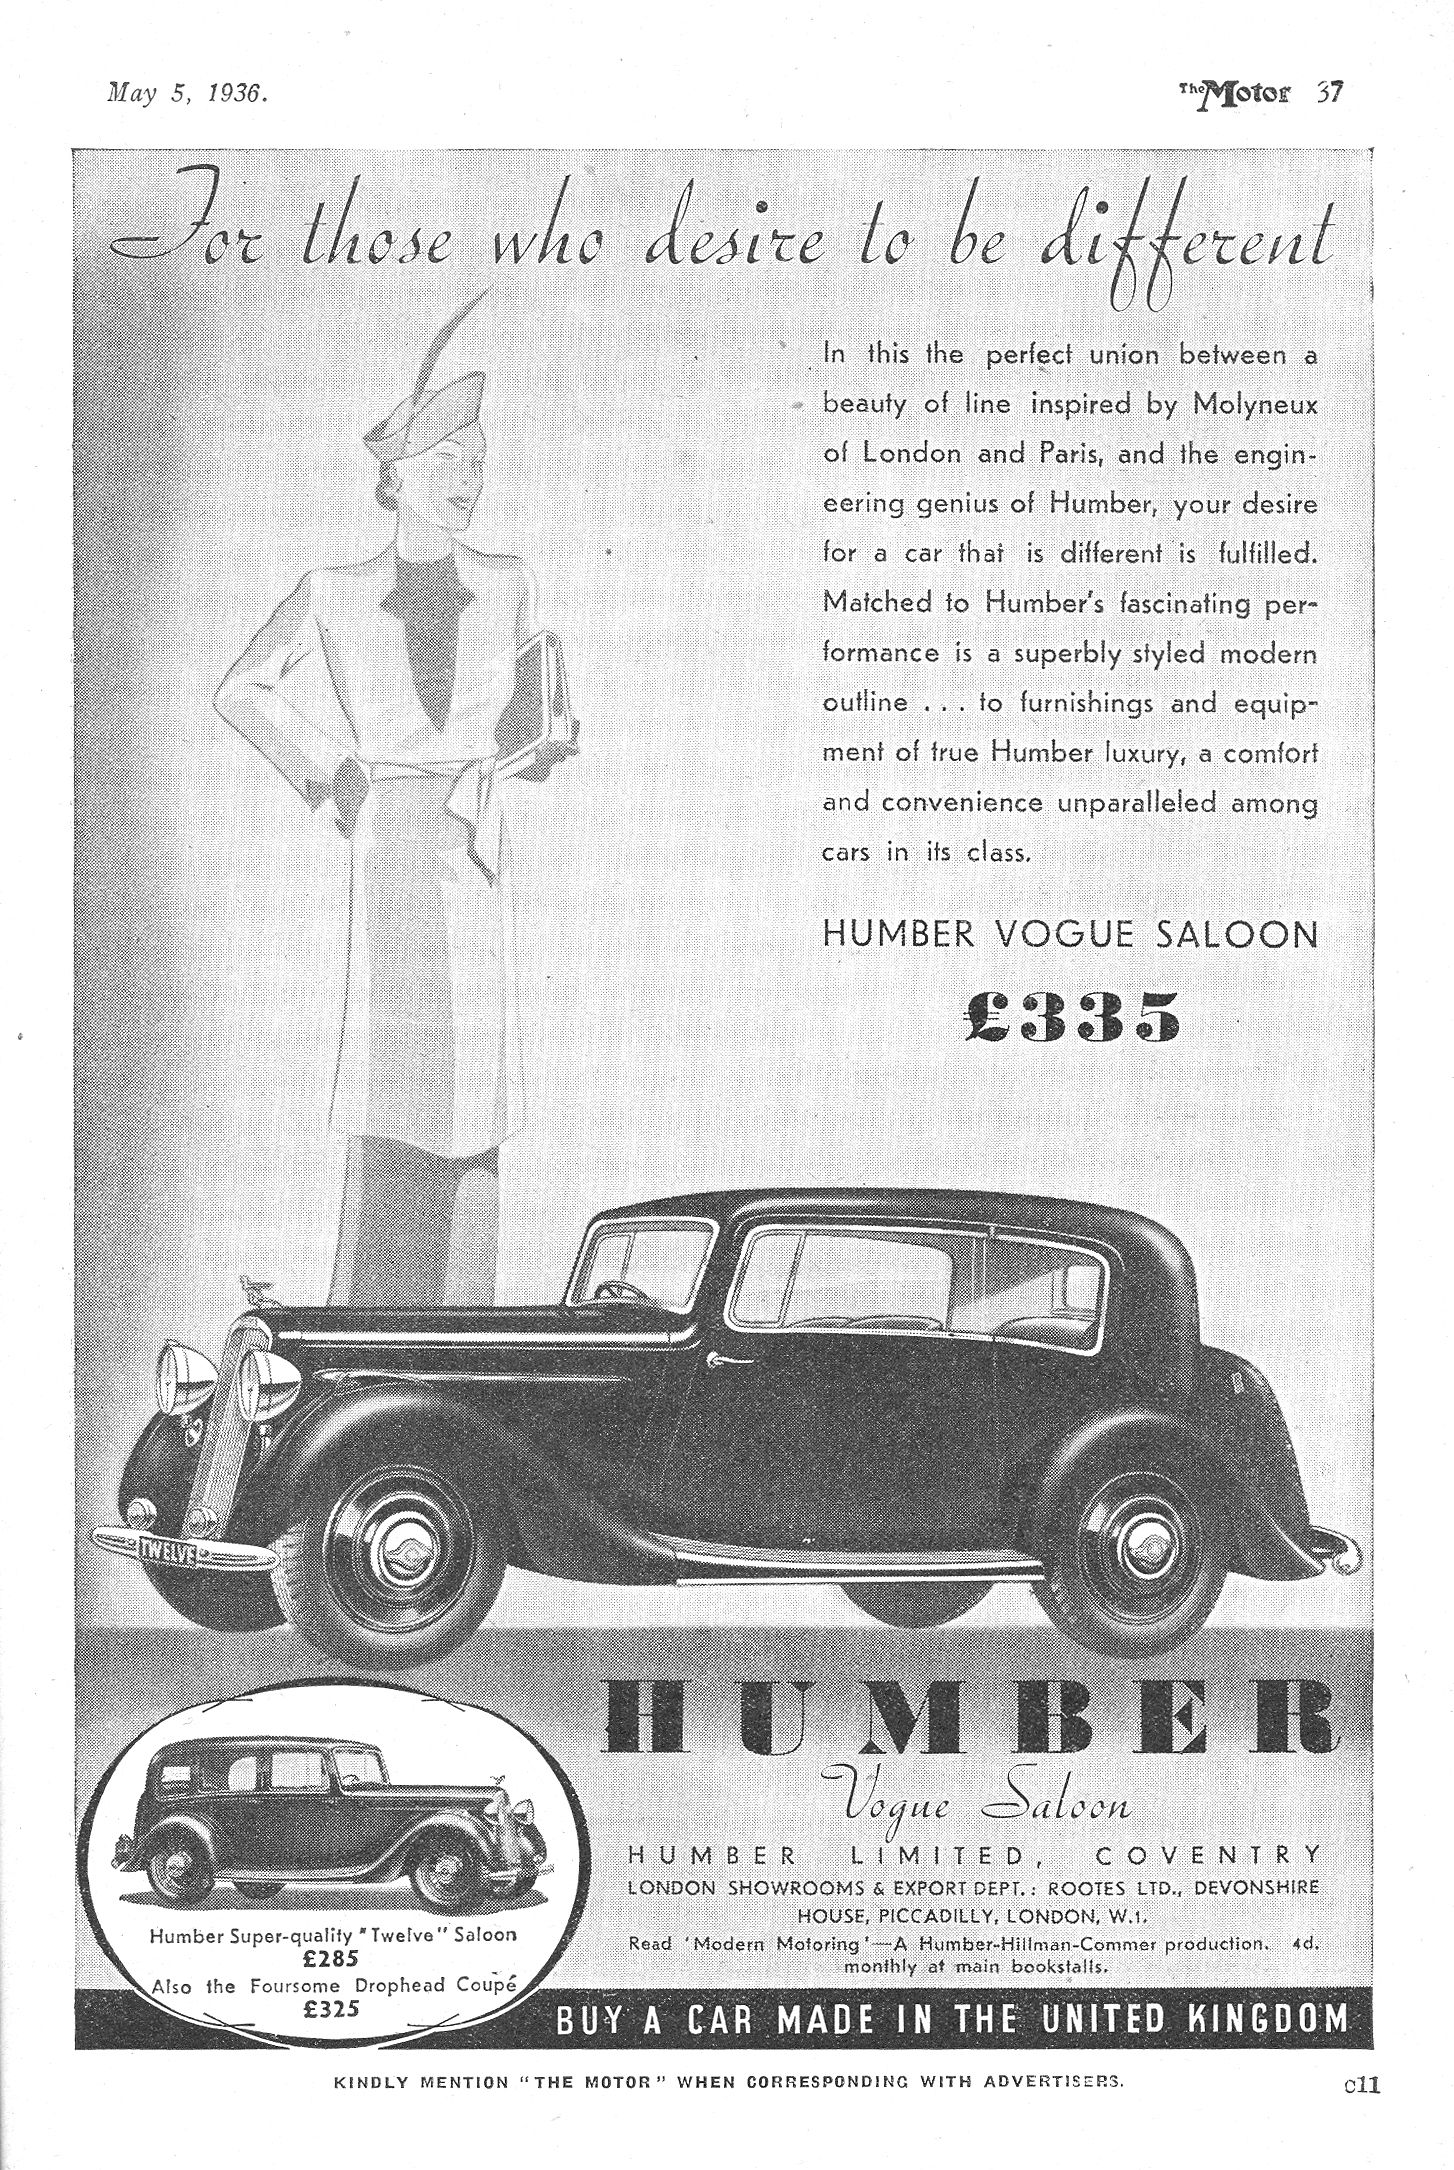 Humber vogue Autocar Motor Advert 1936 - For those who desire to be ...